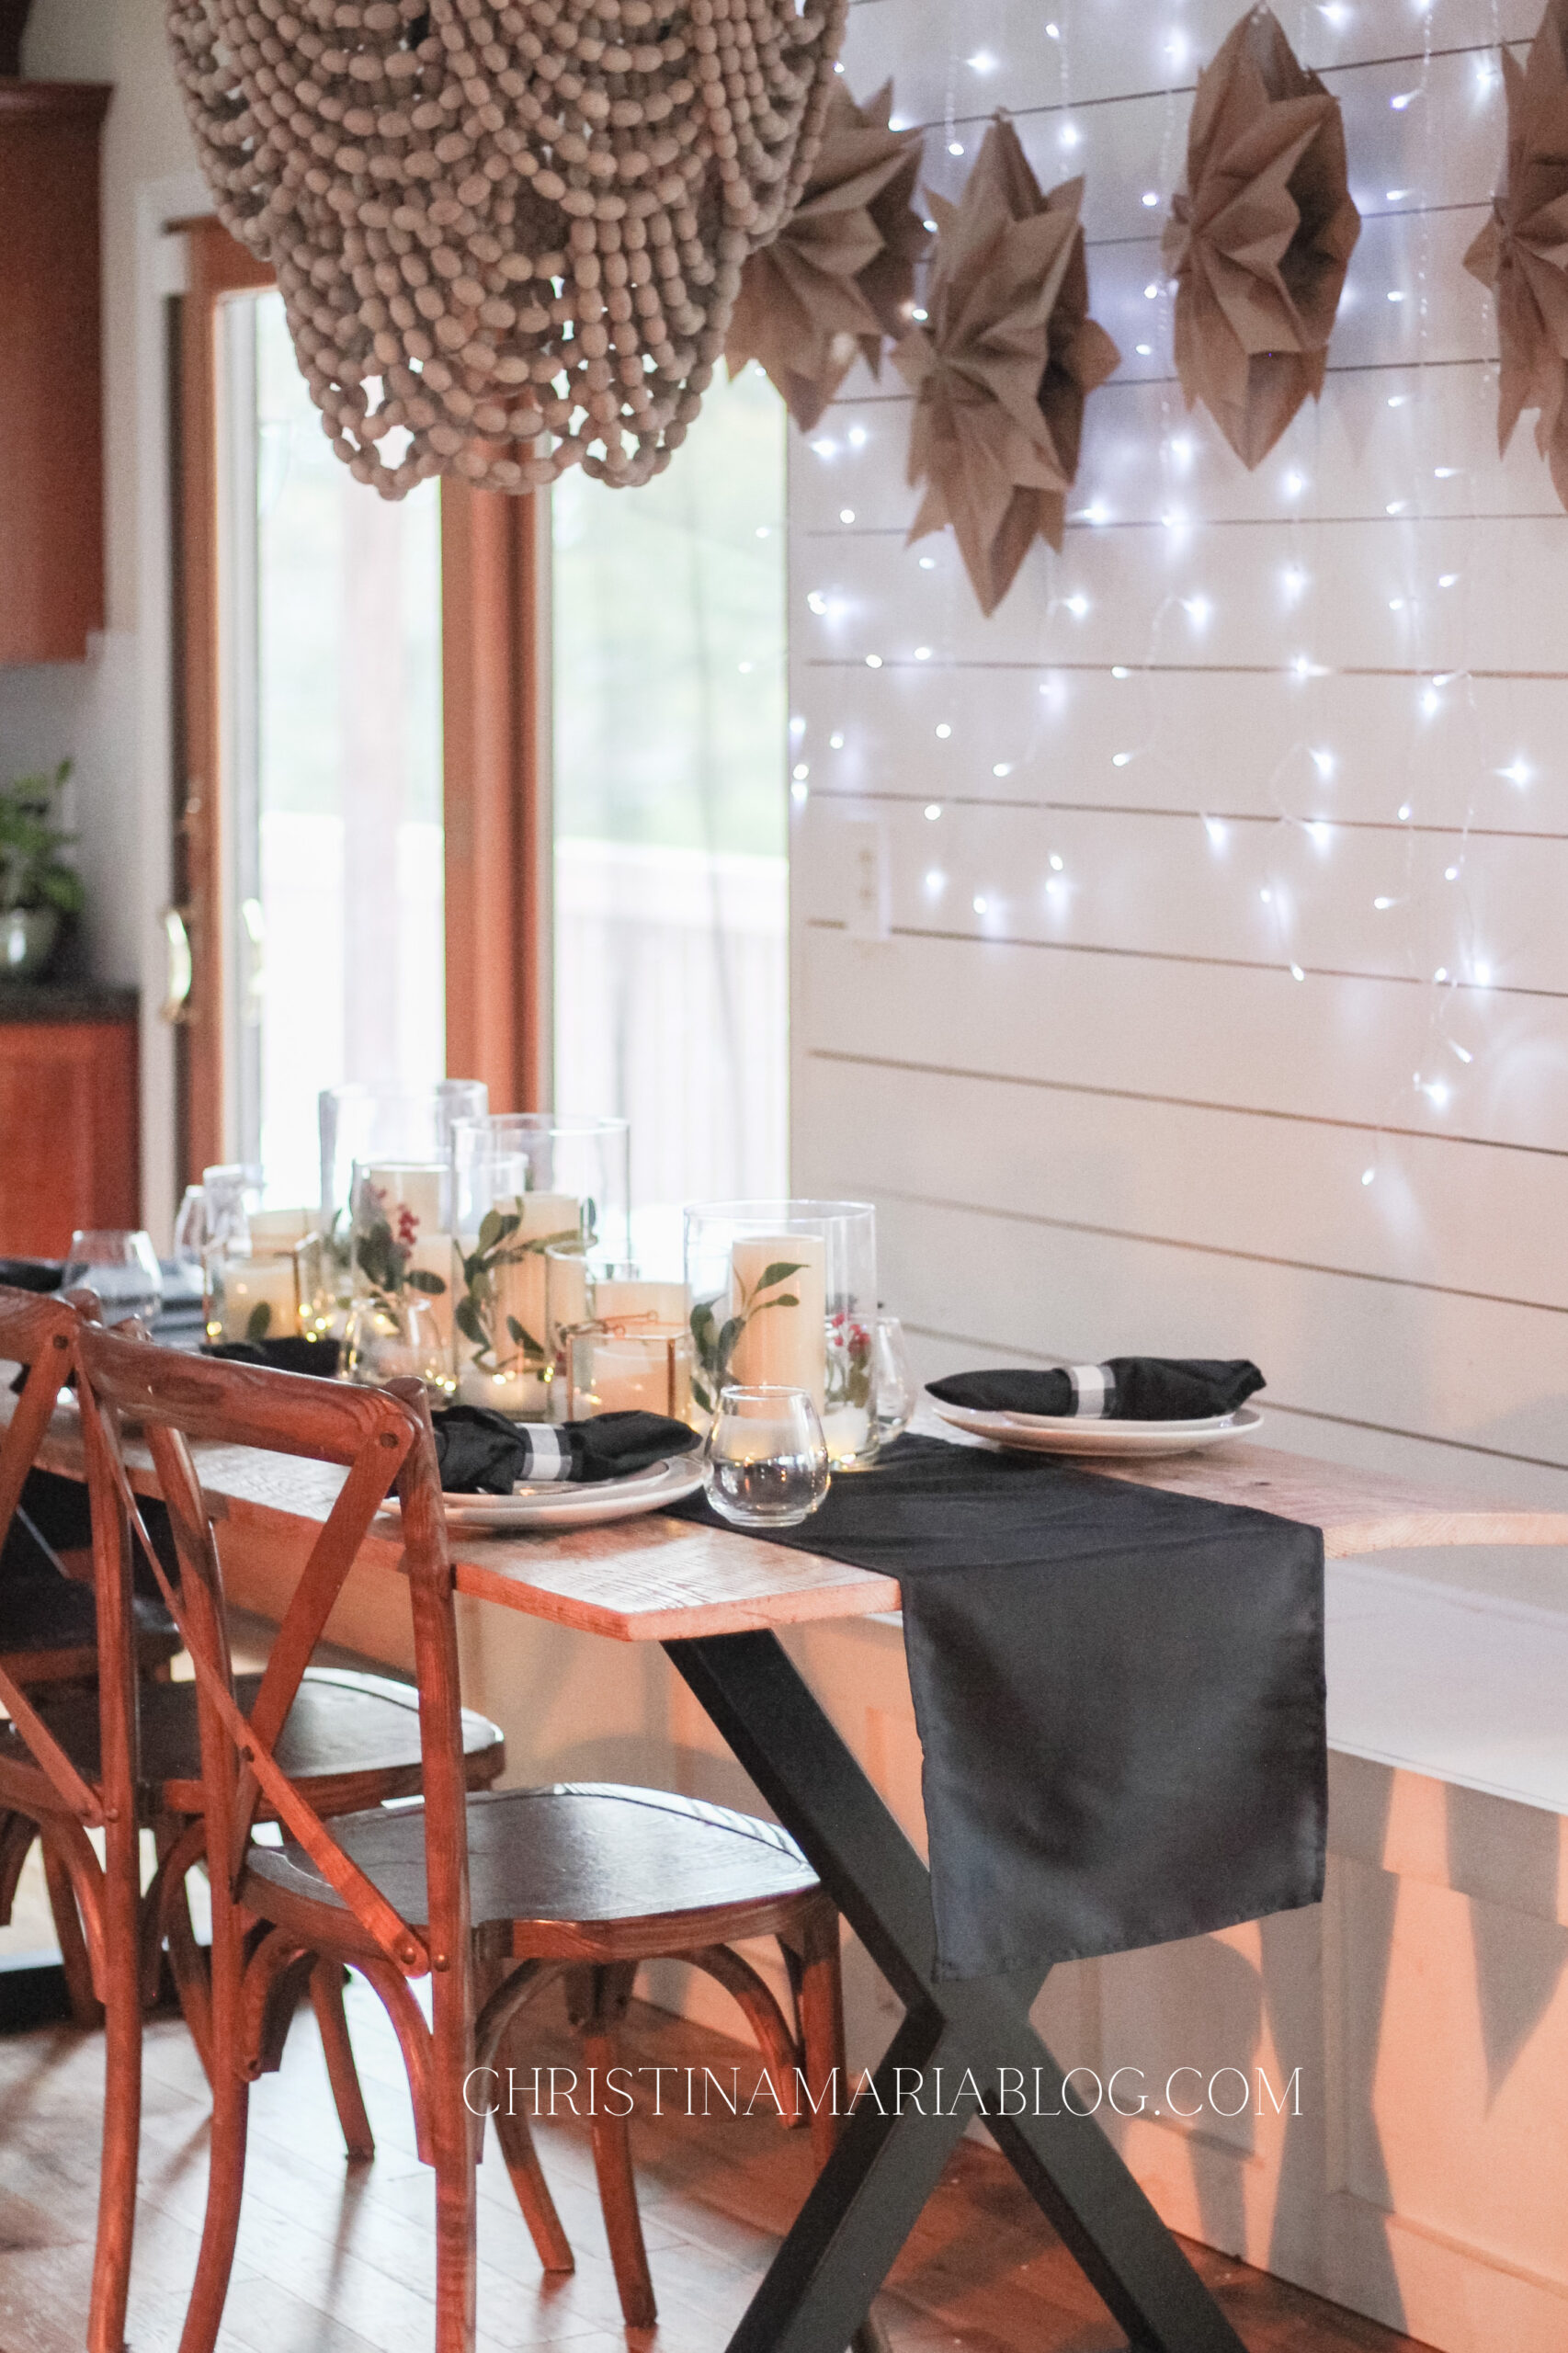 Cozy Christmas table decorations